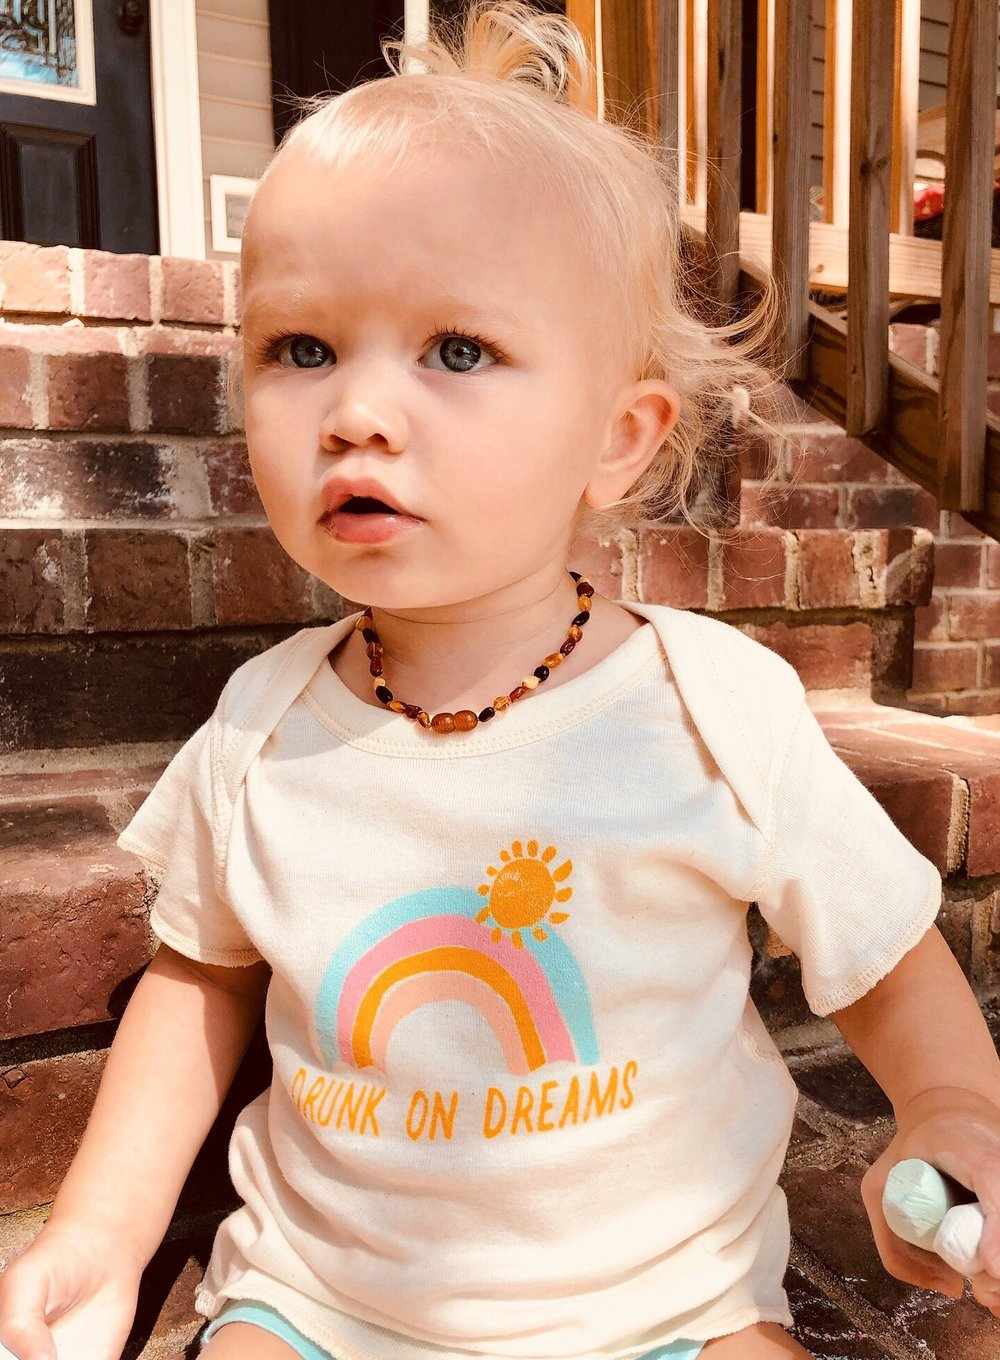 Baby girl wearing cute baby tee that says Drunk on Dreams with a colorful rainbow